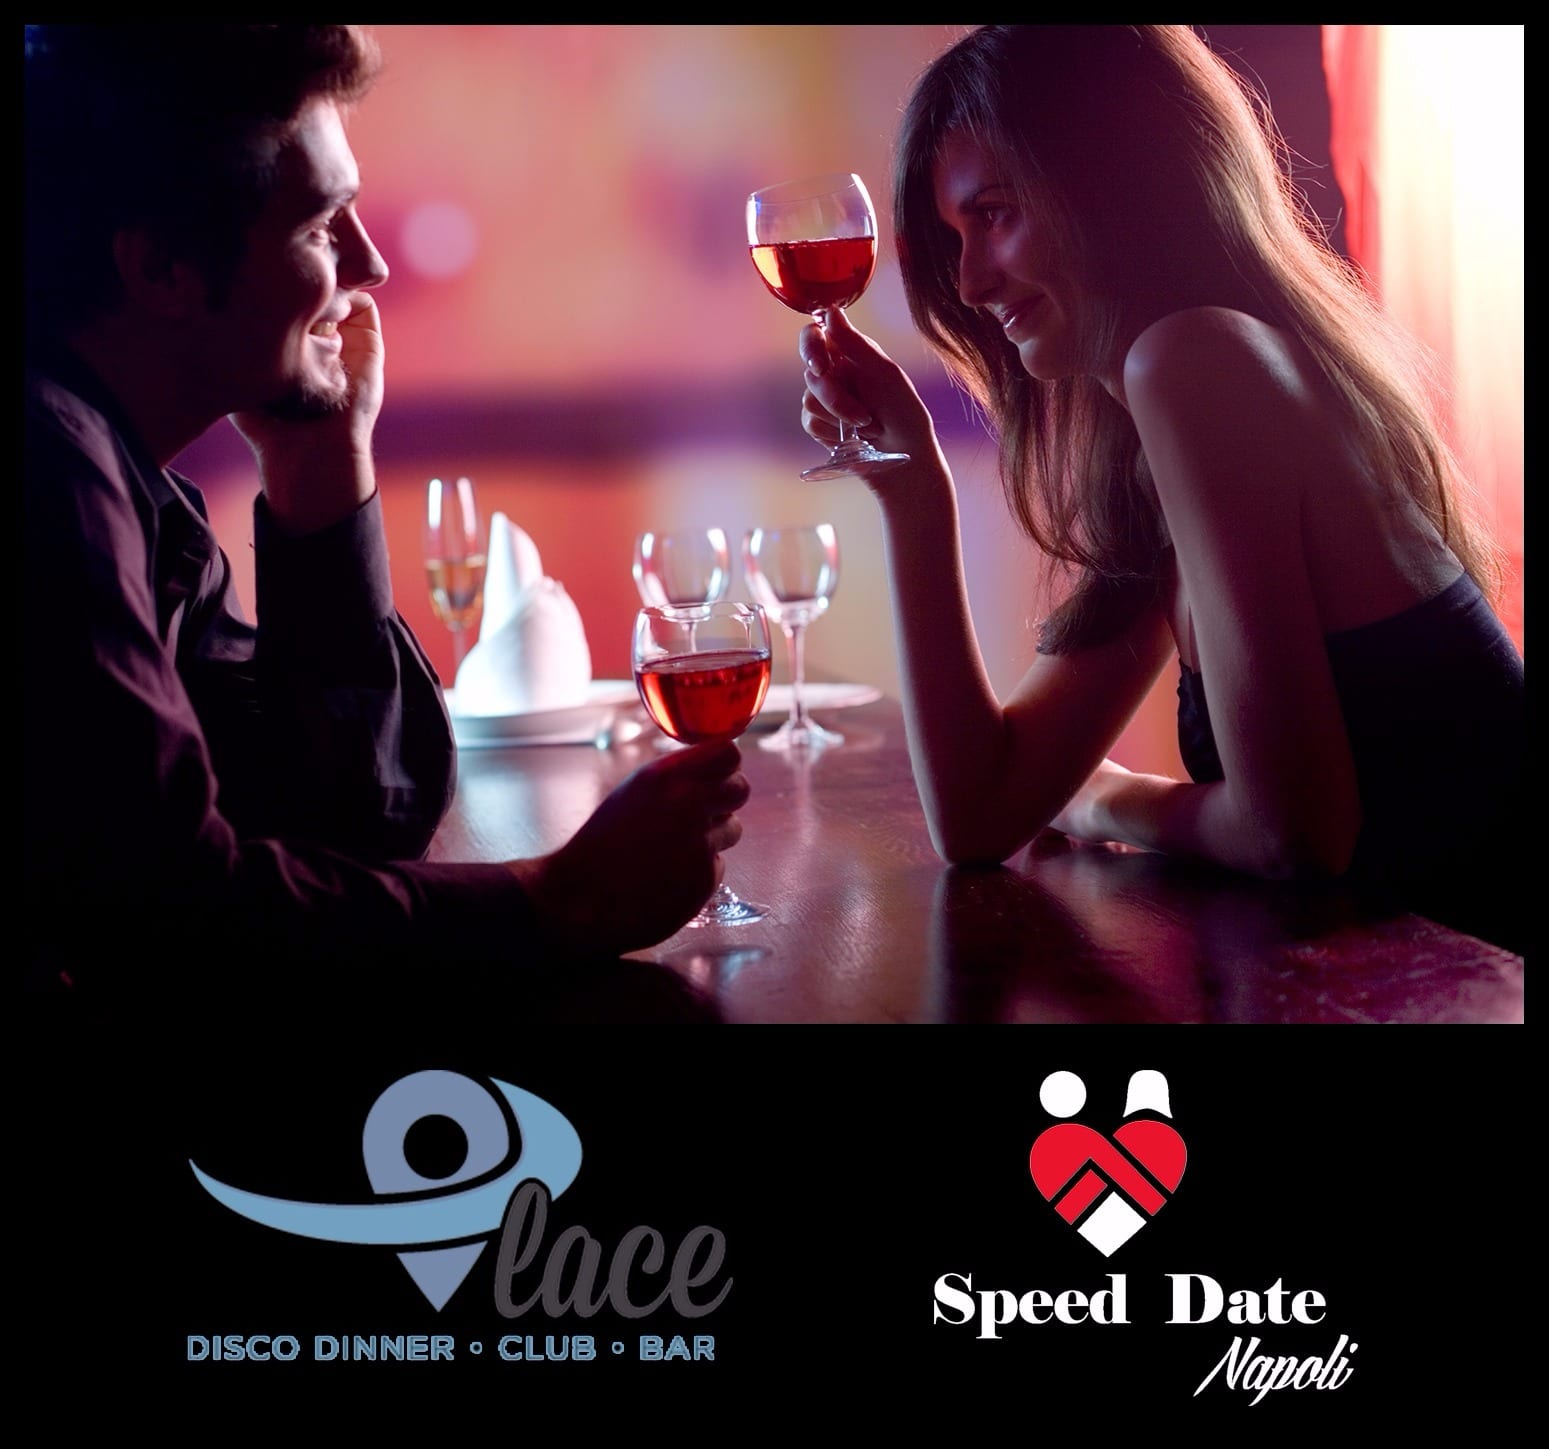 Speed Date Napoli Single - Home Facebook